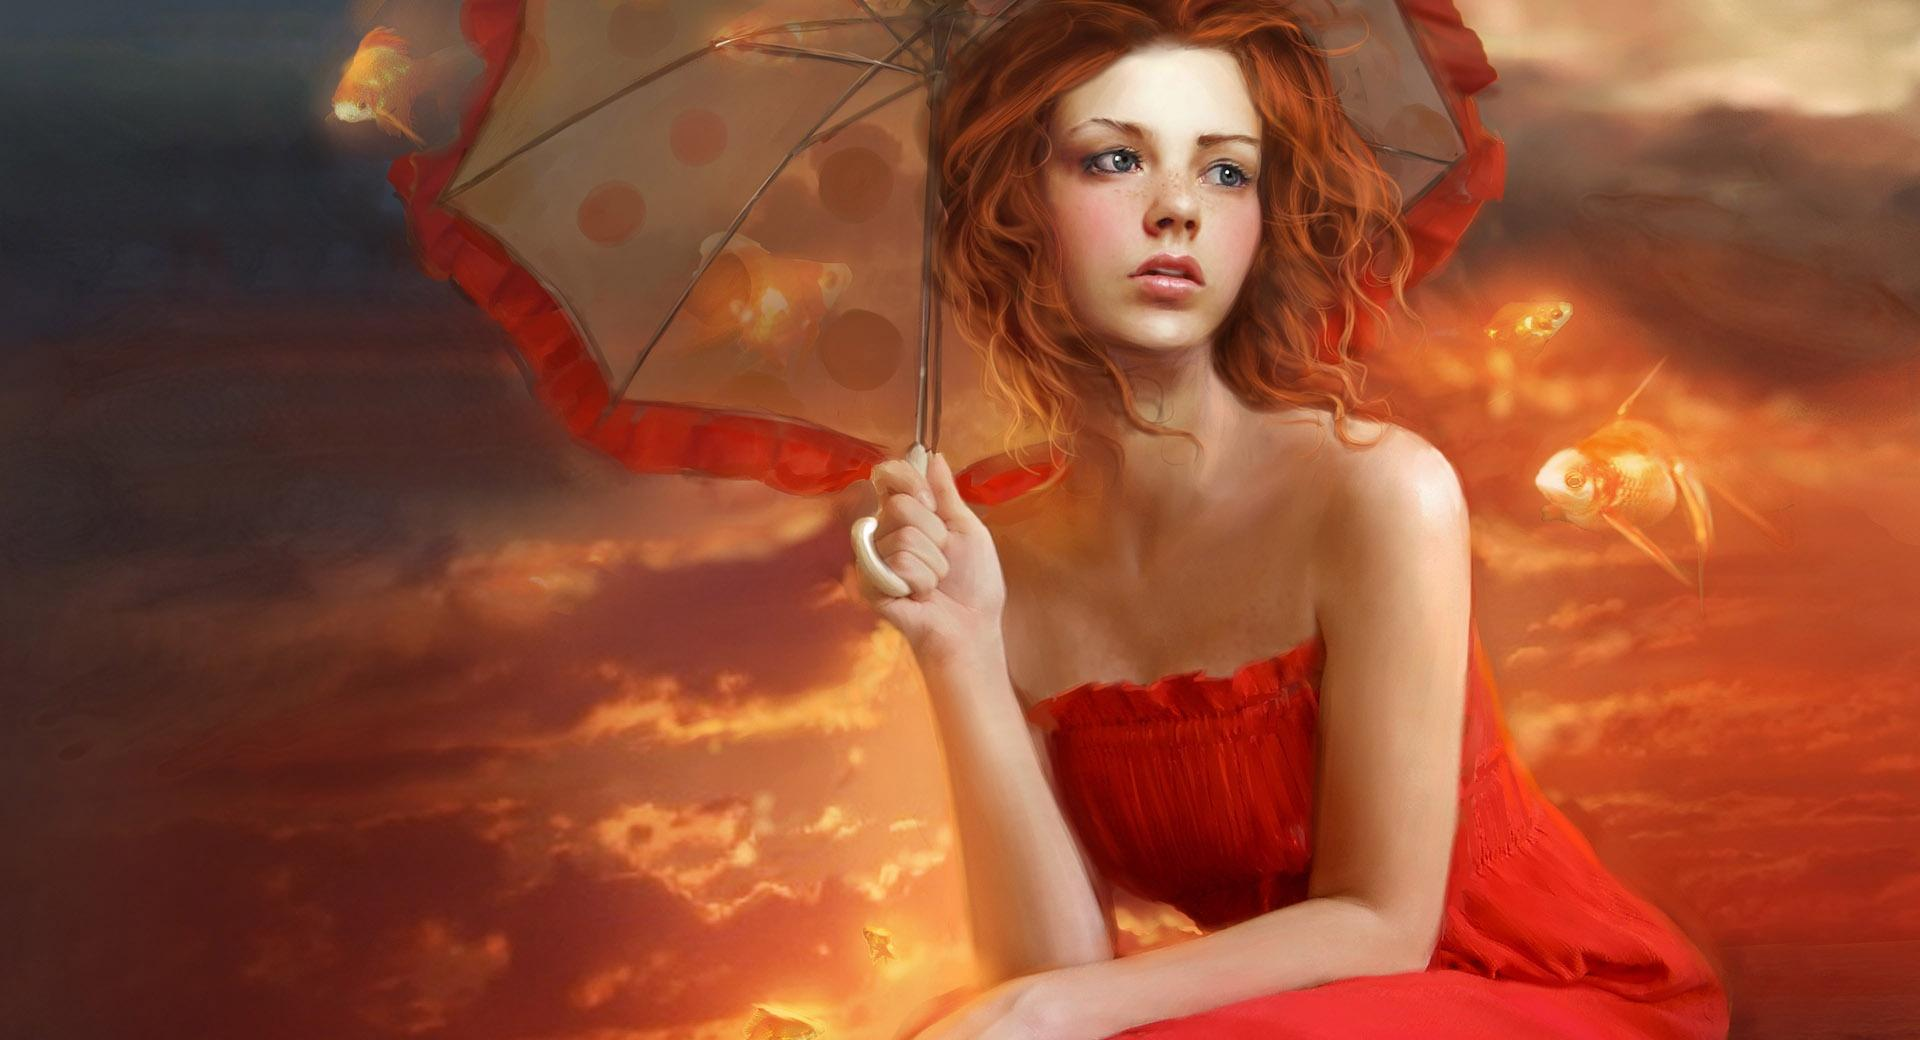 Woman In Red Dress Painting wallpapers HD quality